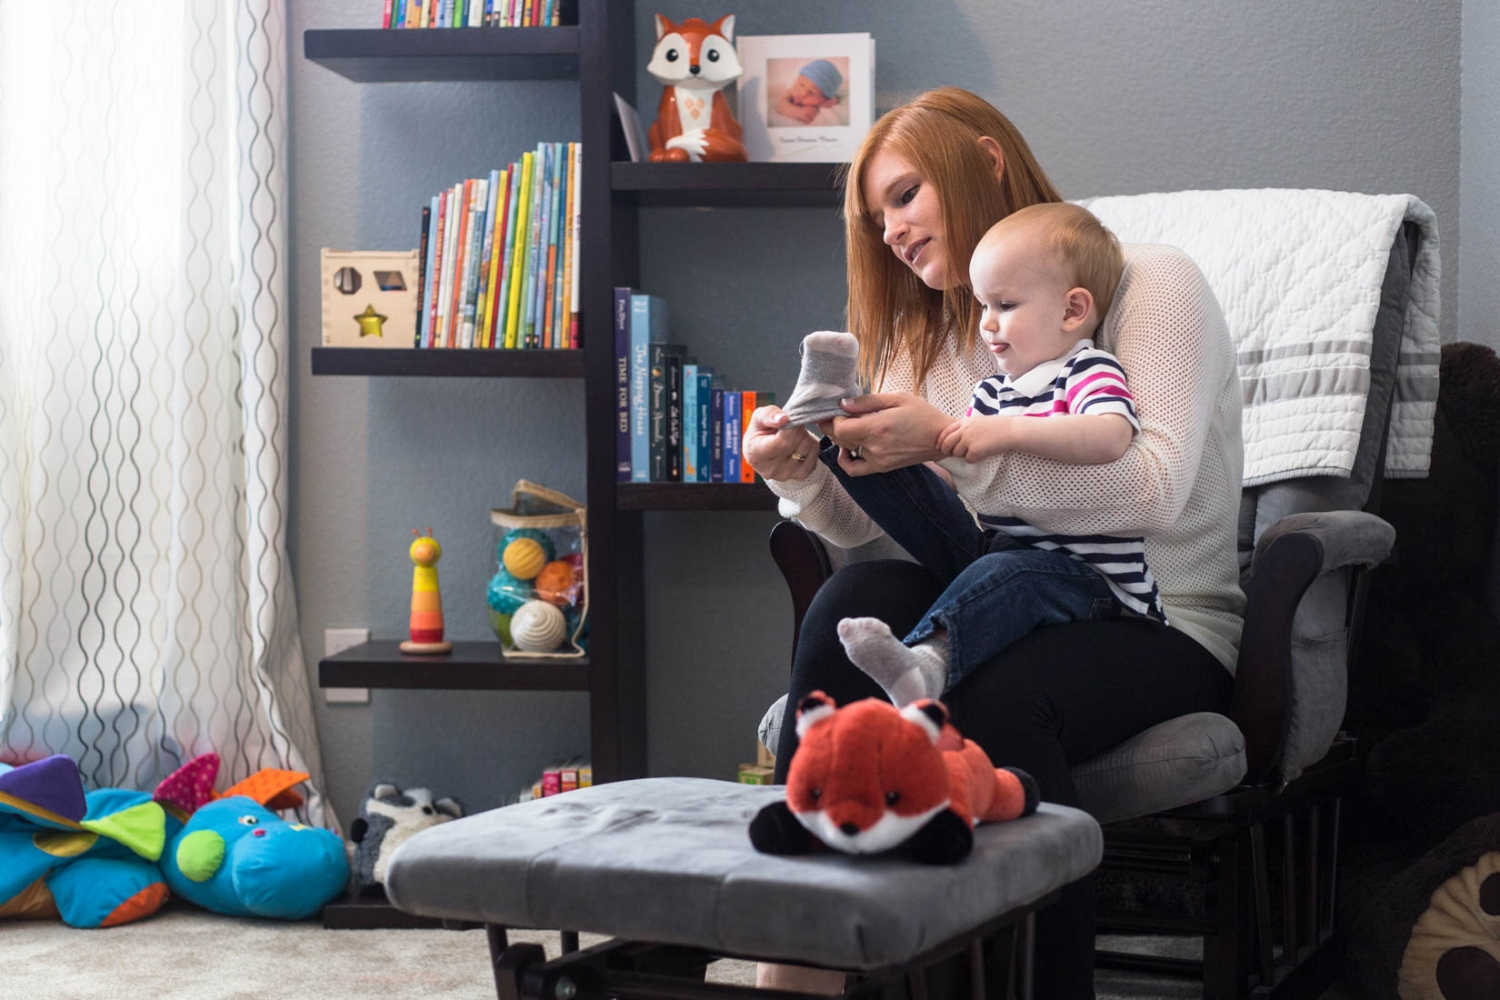 Mom putting on socks of two year old son sitting in a chair